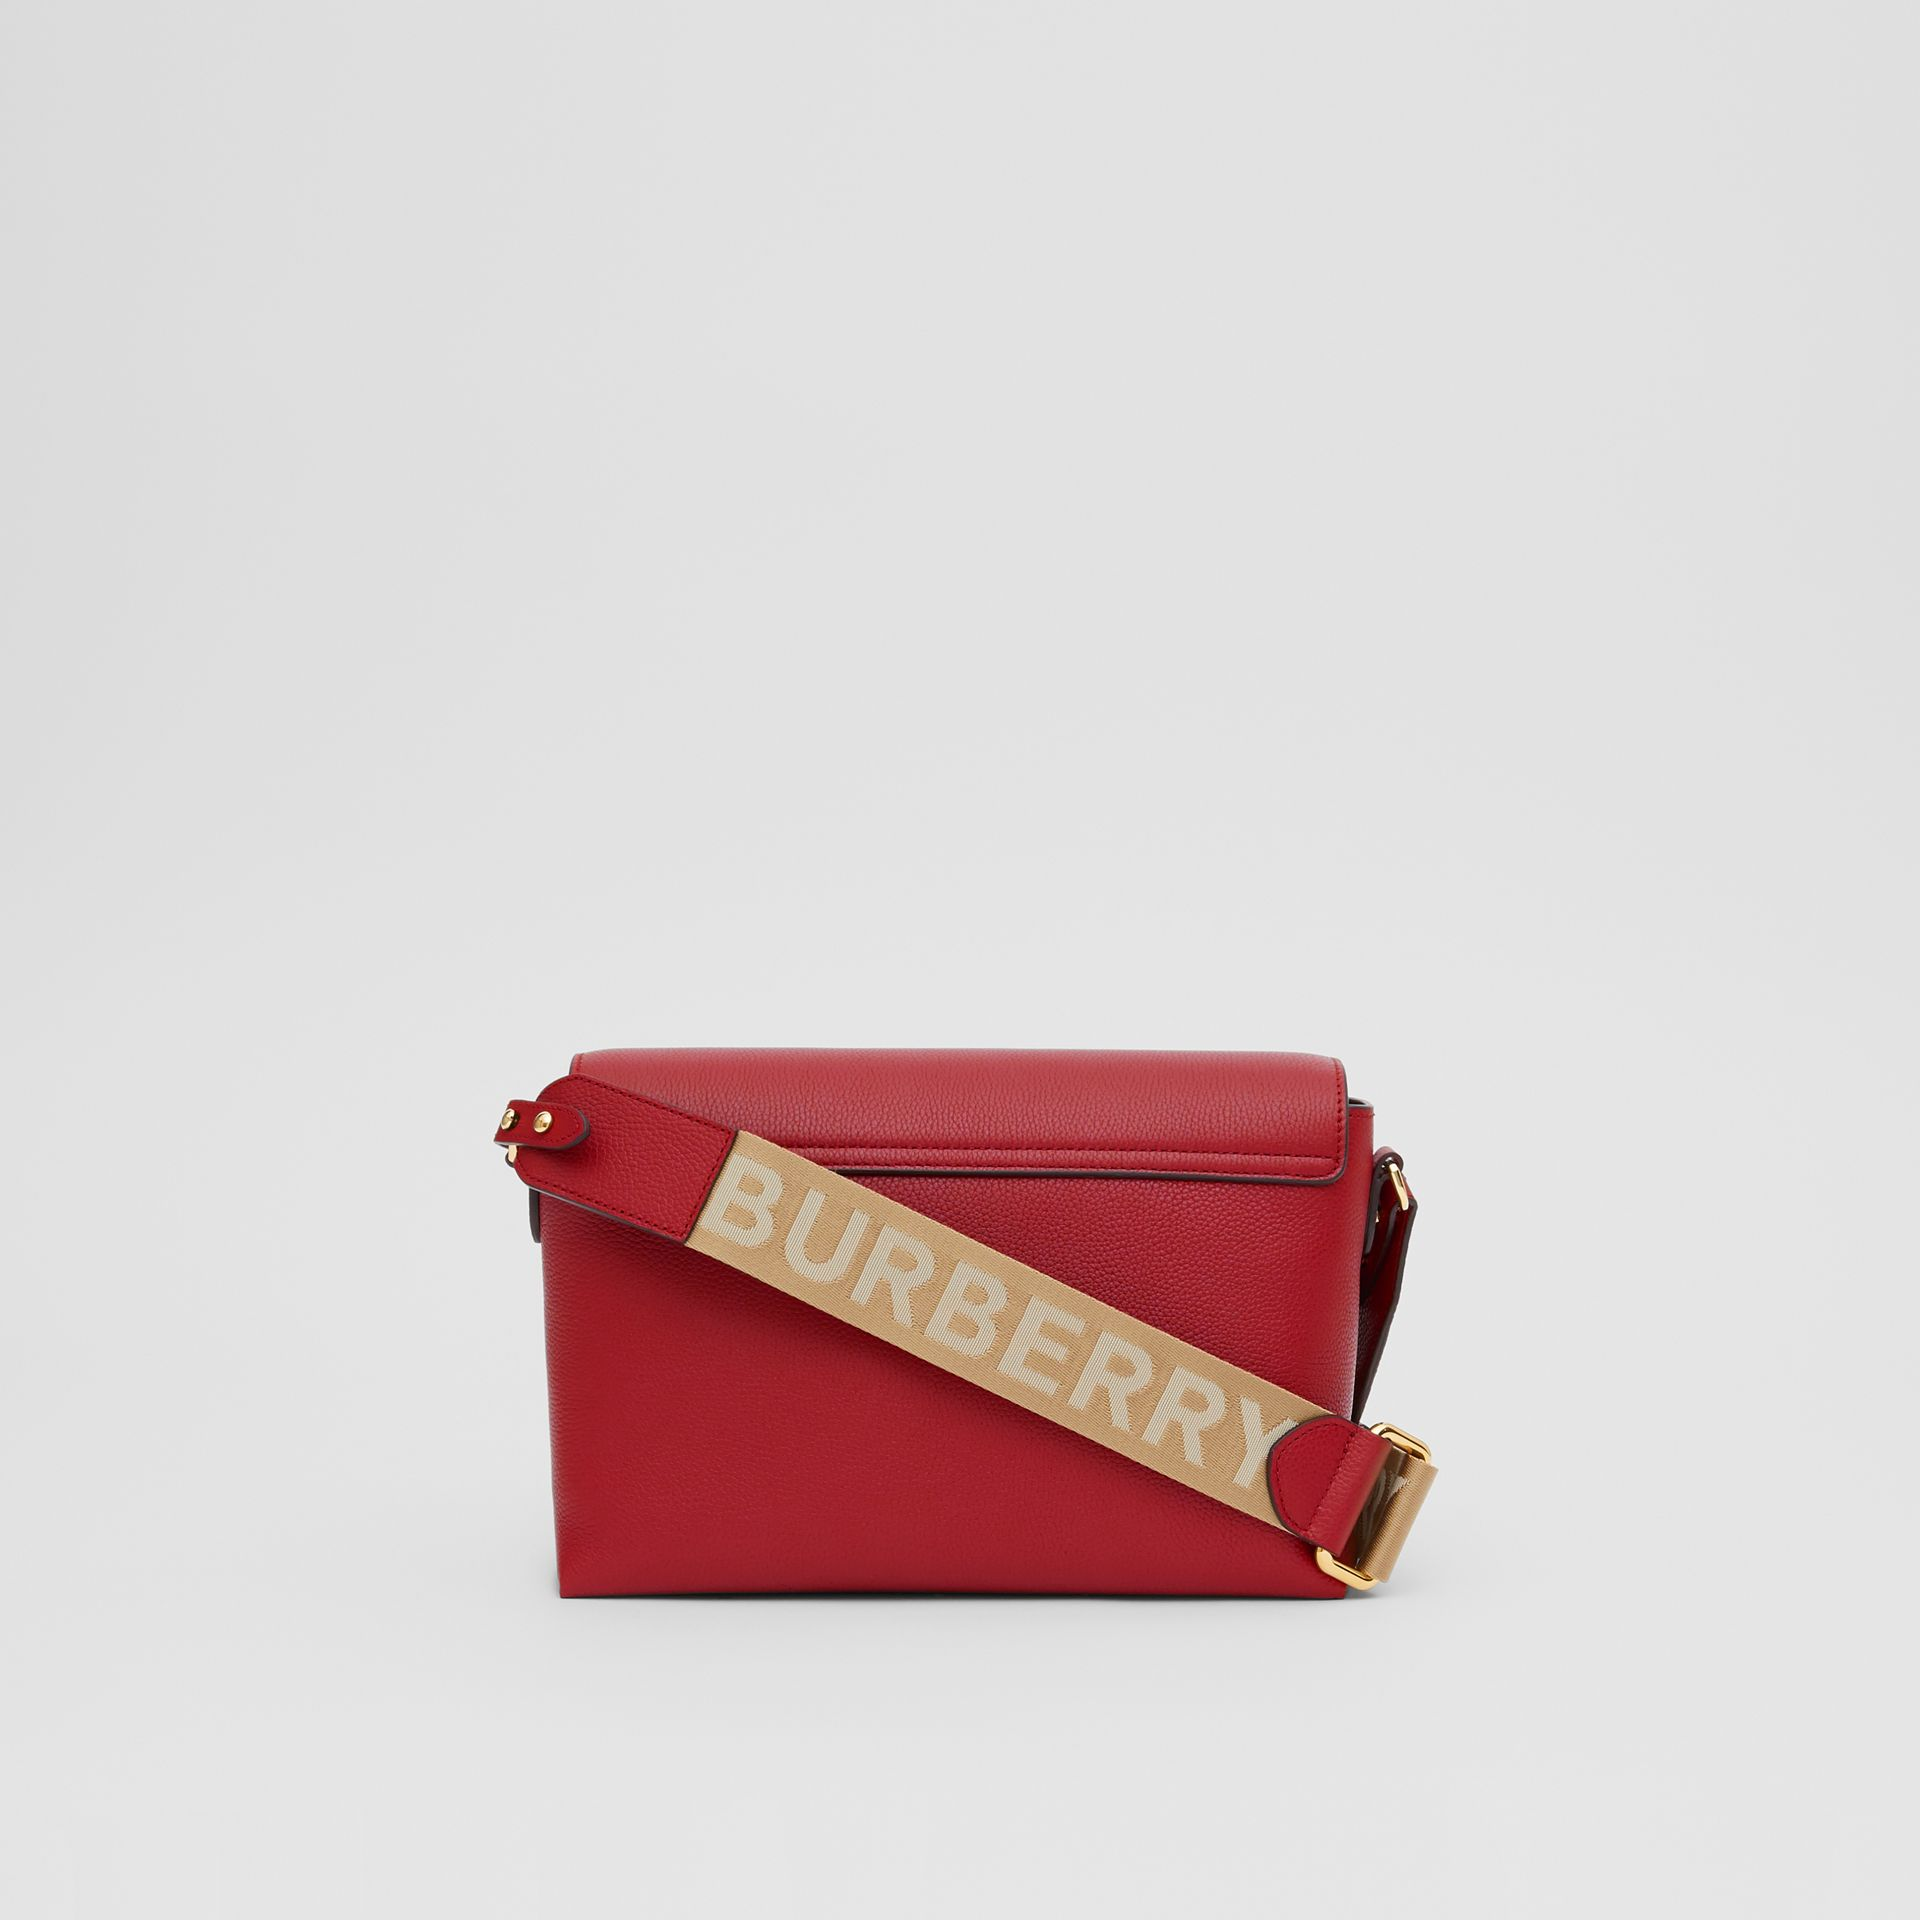 Leather and Vintage Check Note Crossbody Bag in Dark Carmine - Women | Burberry United States - gallery image 7